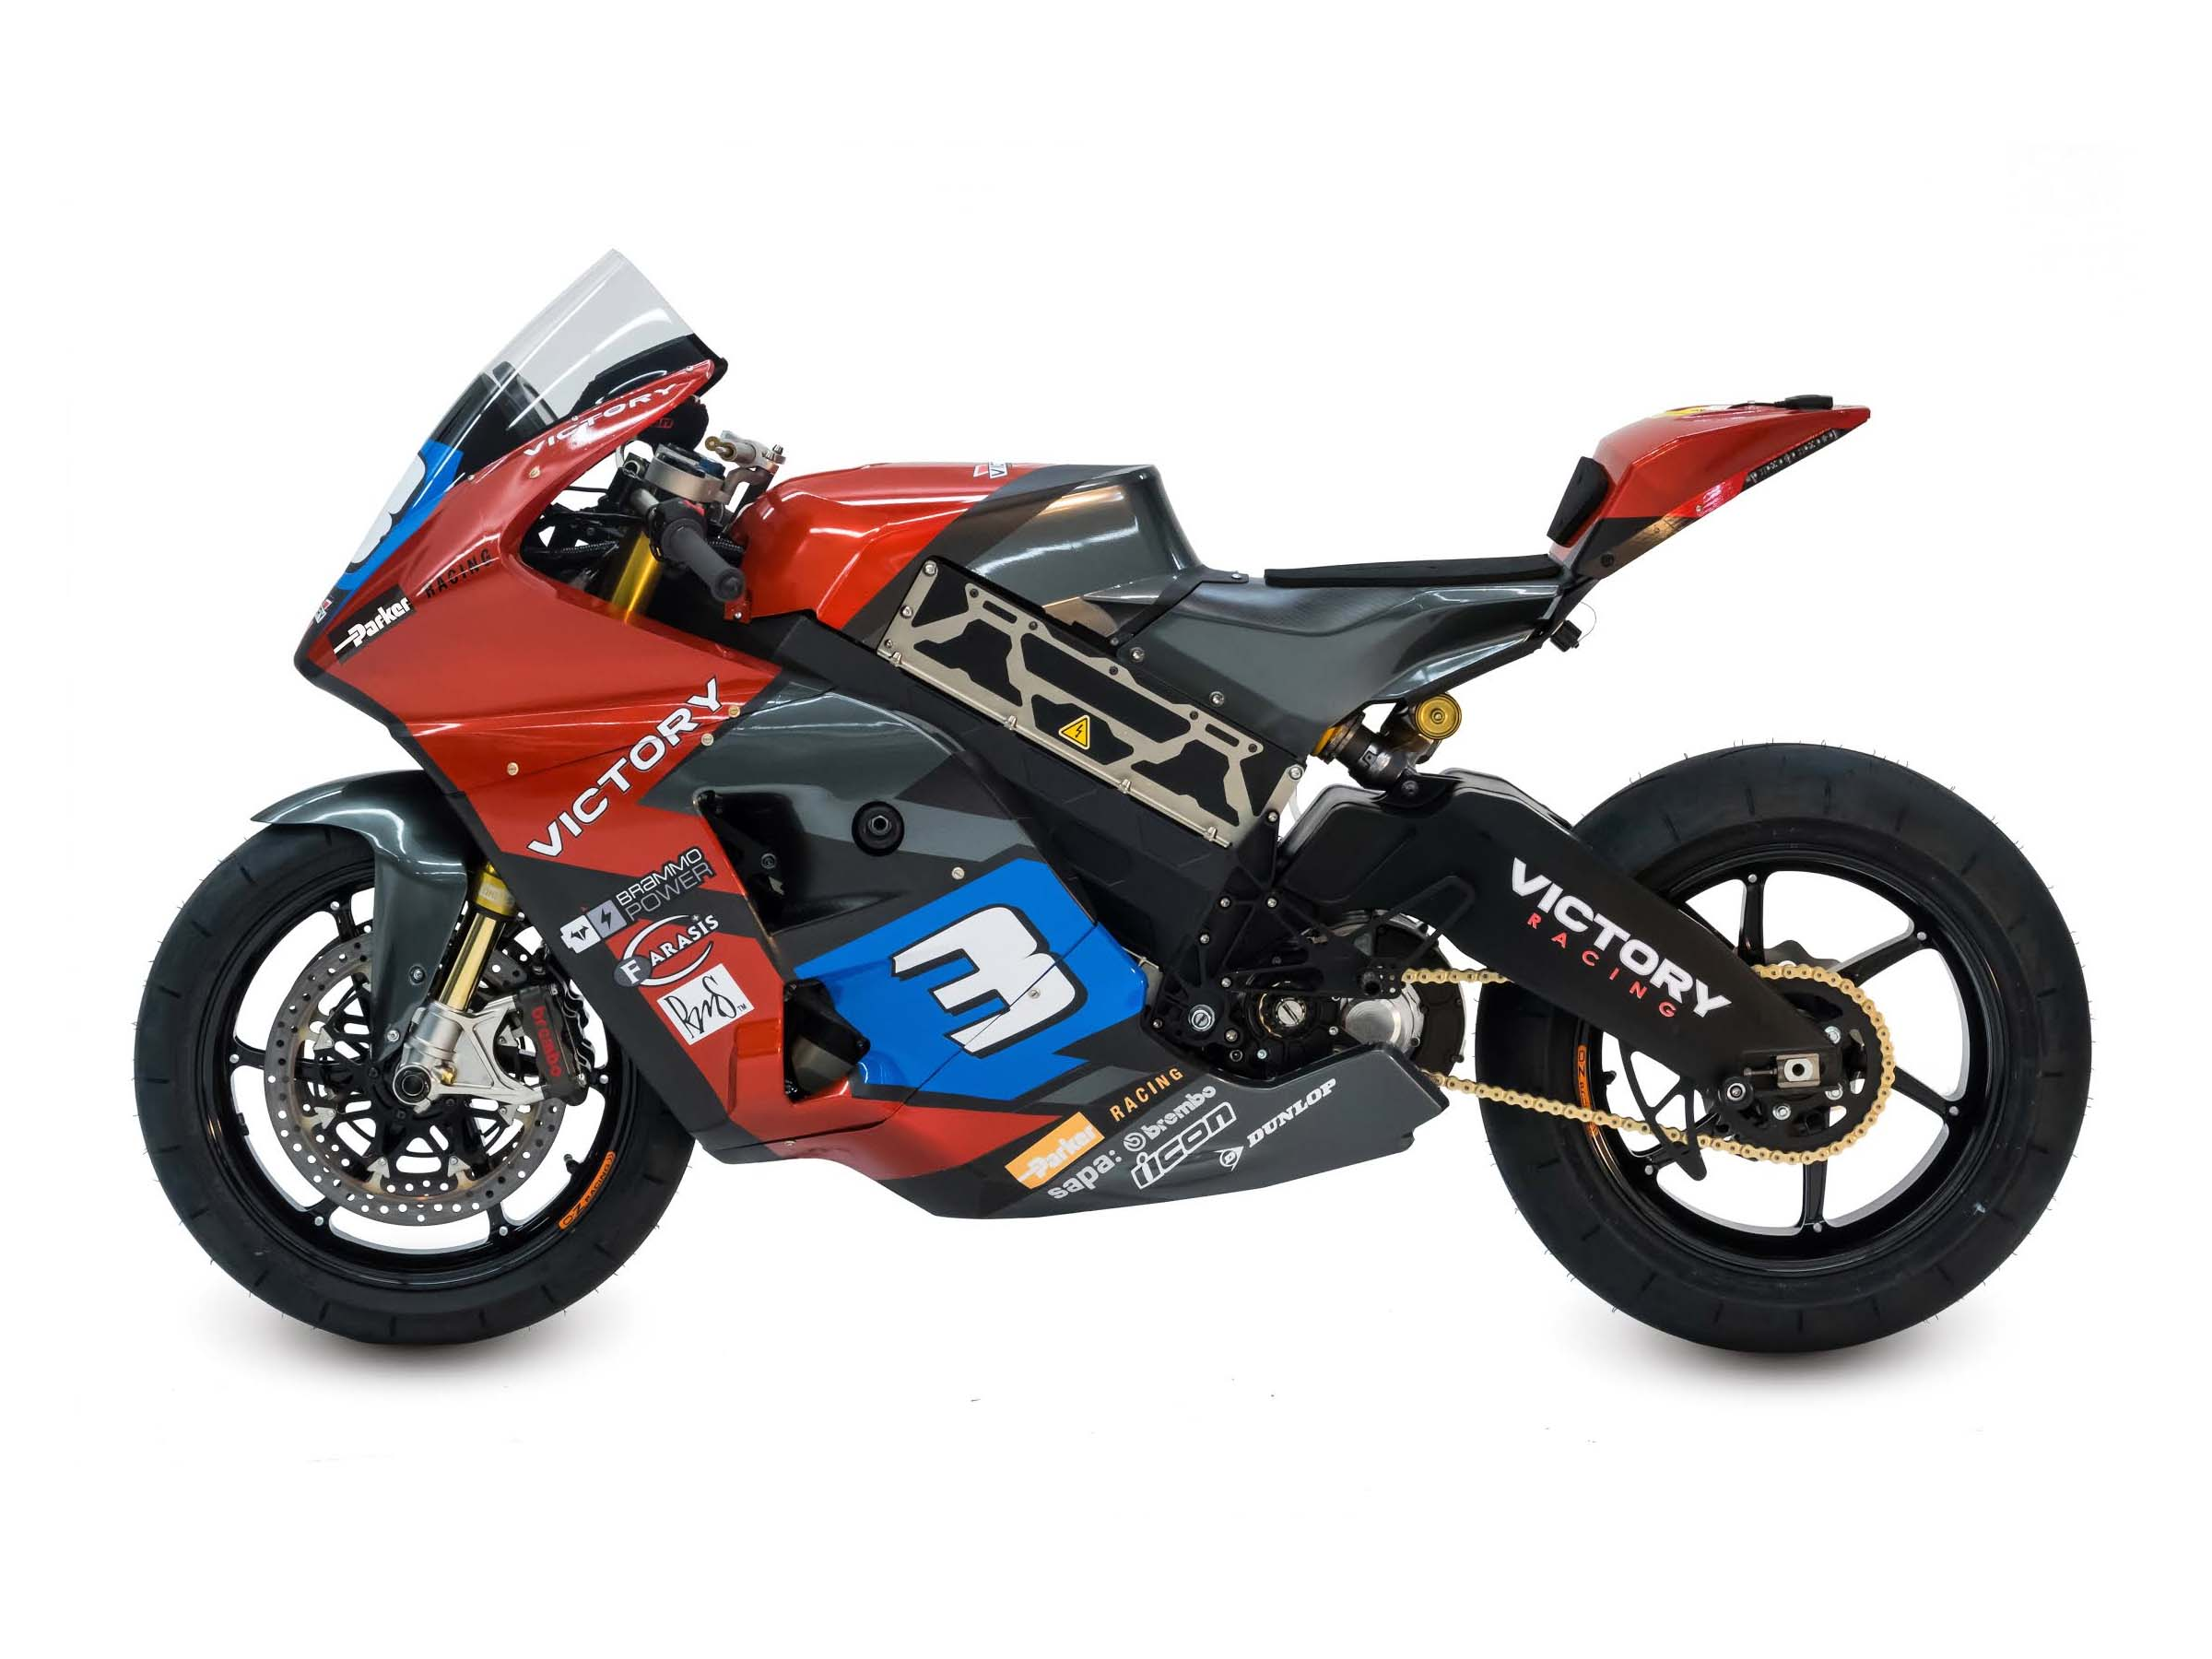 victory entering an electric race bike at isle of man tt. Black Bedroom Furniture Sets. Home Design Ideas